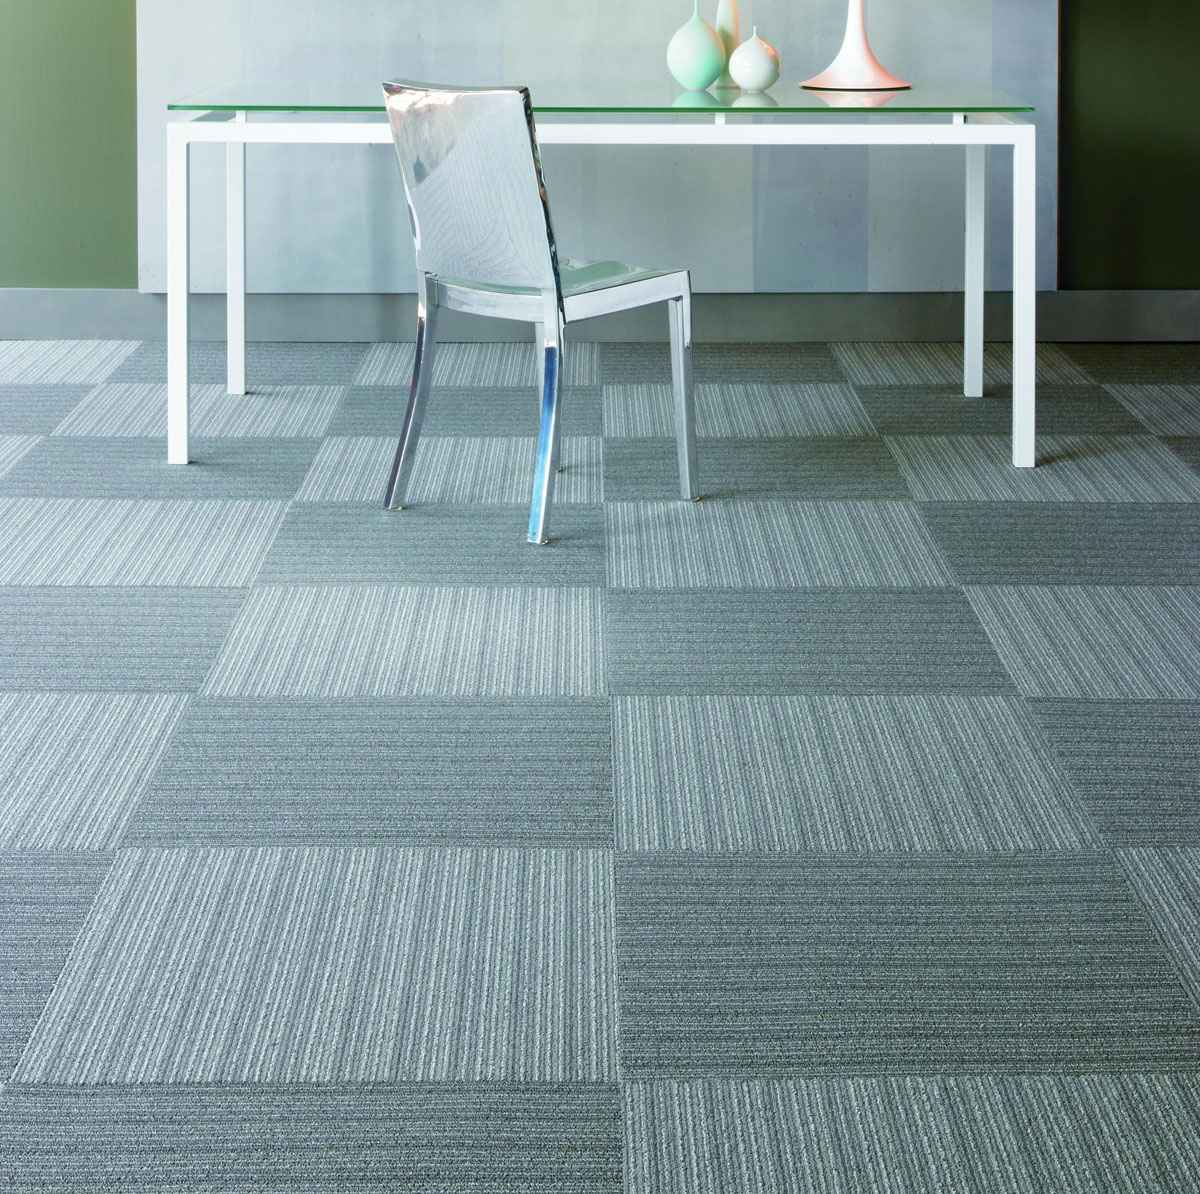 Commercial Carpet Tiles For Basement | Feel The Home